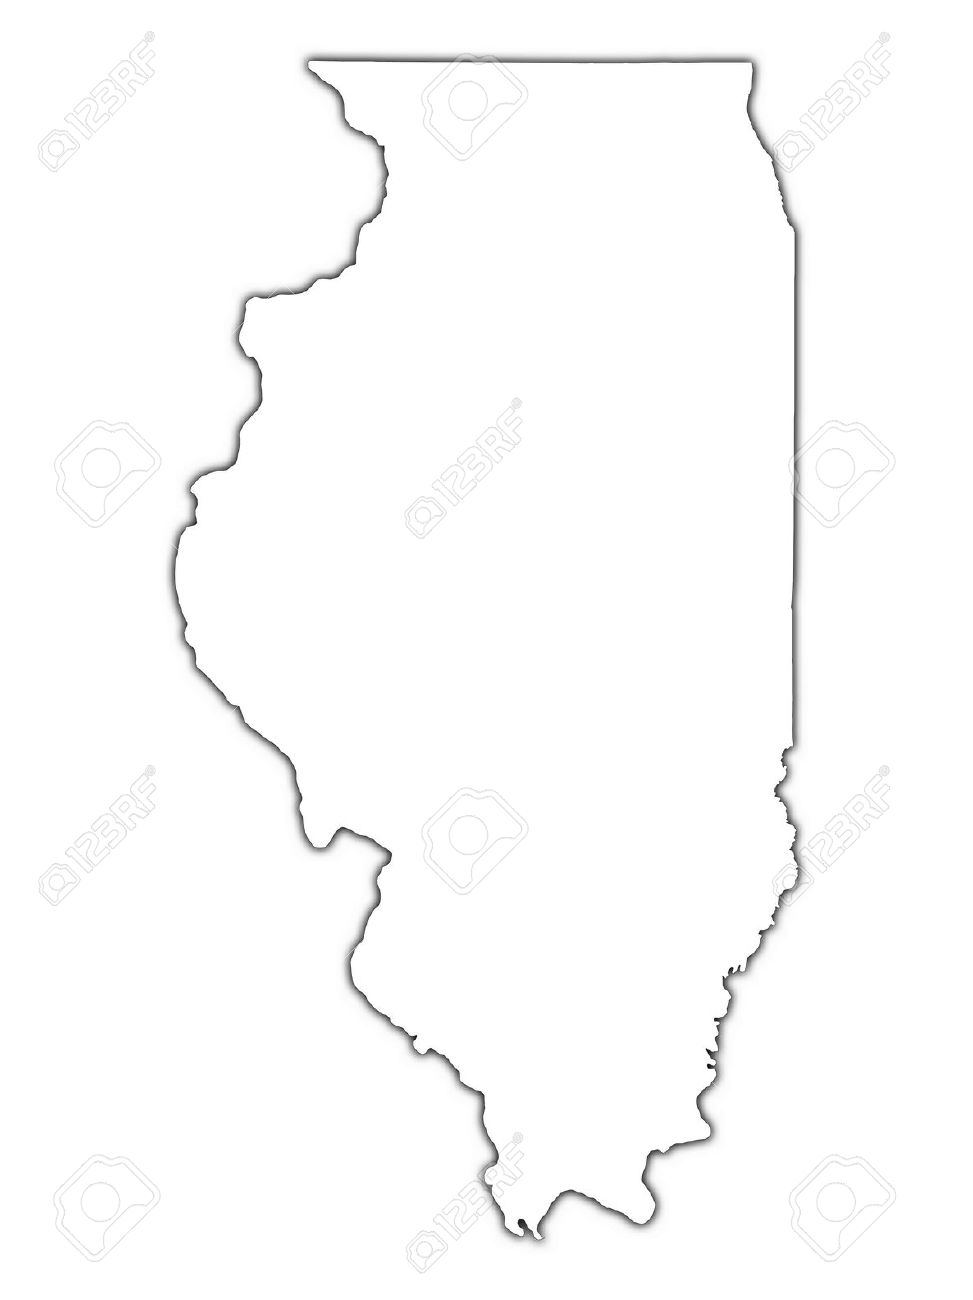 Illinois (USA) Outline Map With Shadow. Detailed, Mercator.